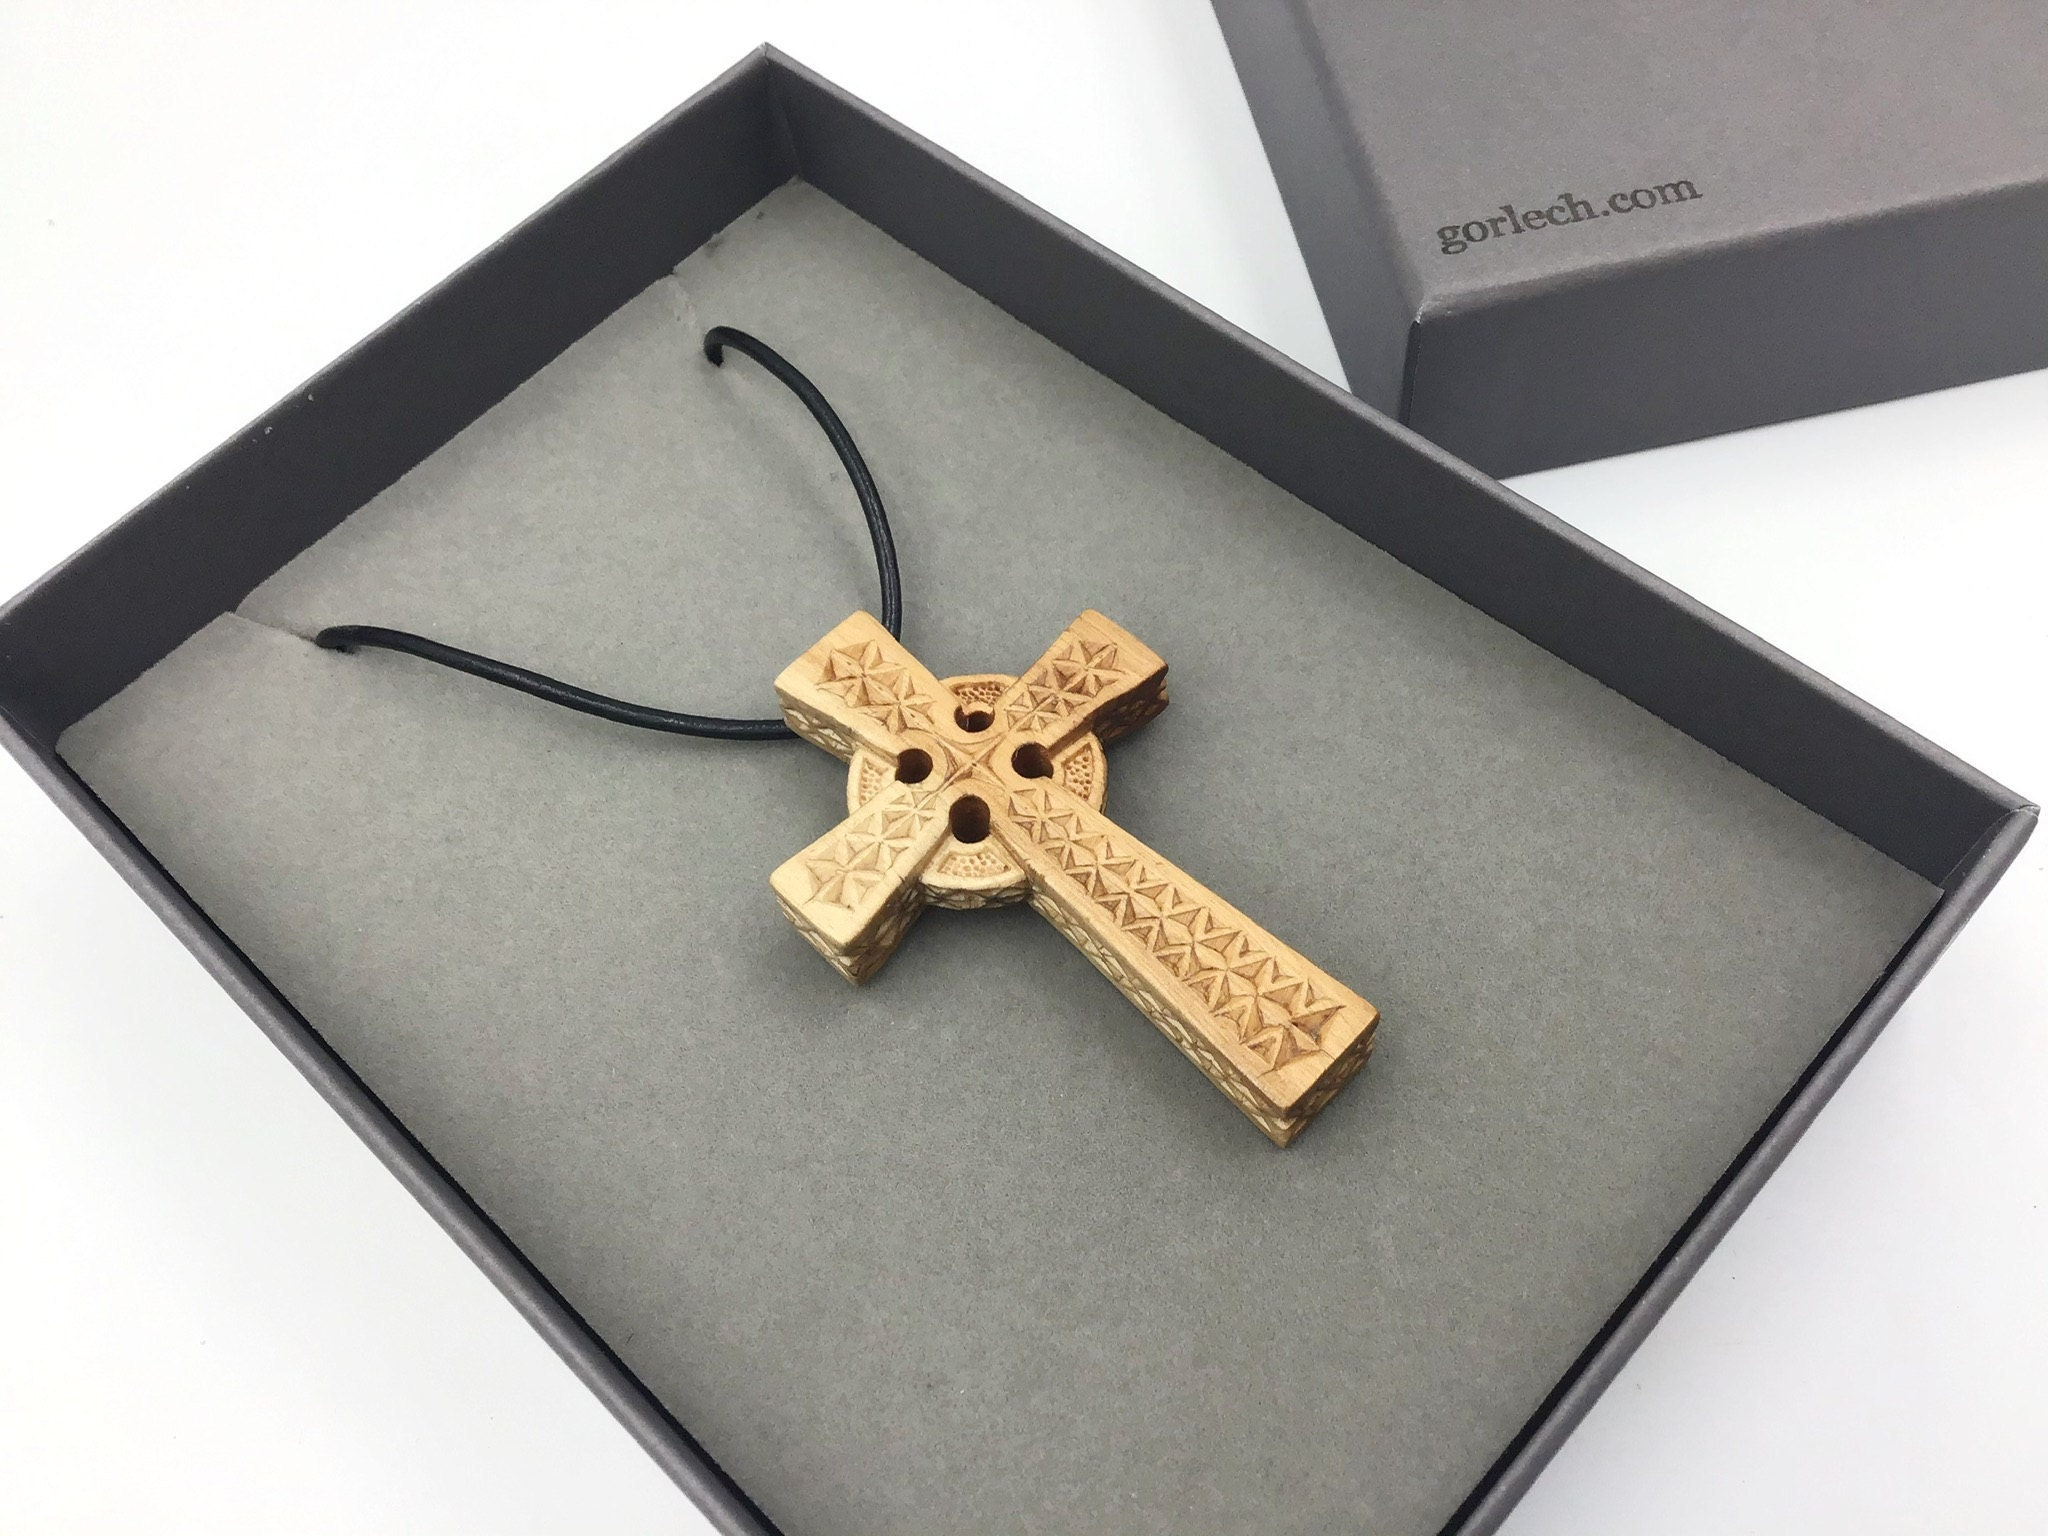 Celtic Cross pendant - Hand carved by Gorlech in Wales UK